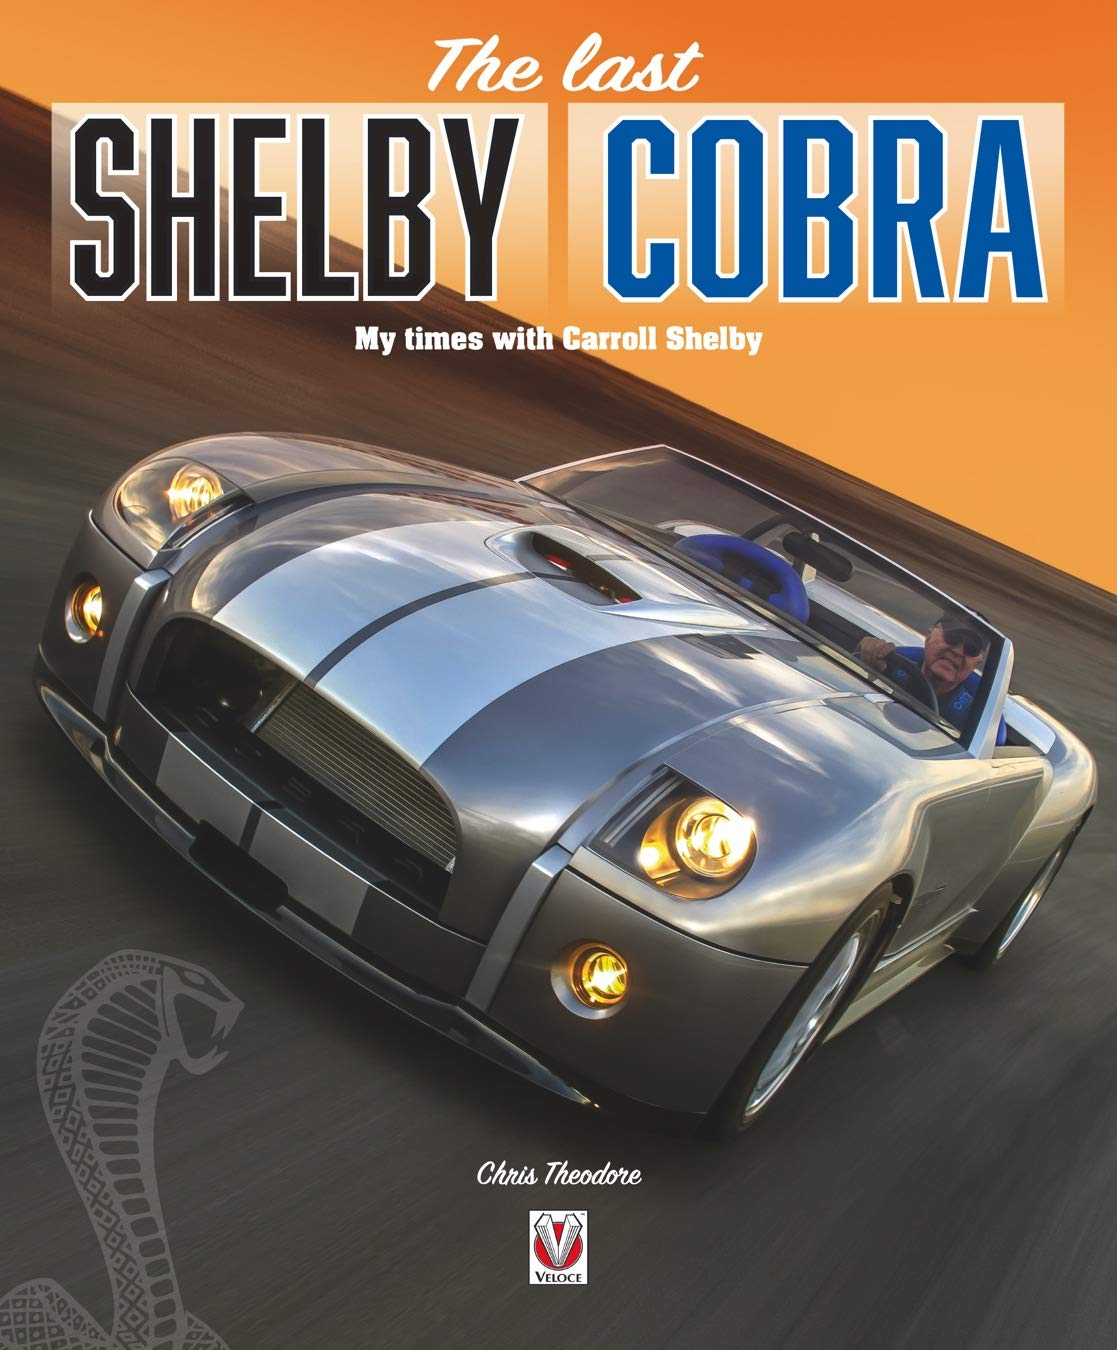 The Last Shelby Cobra: My times with Carroll Shelby by Veloce Publishing